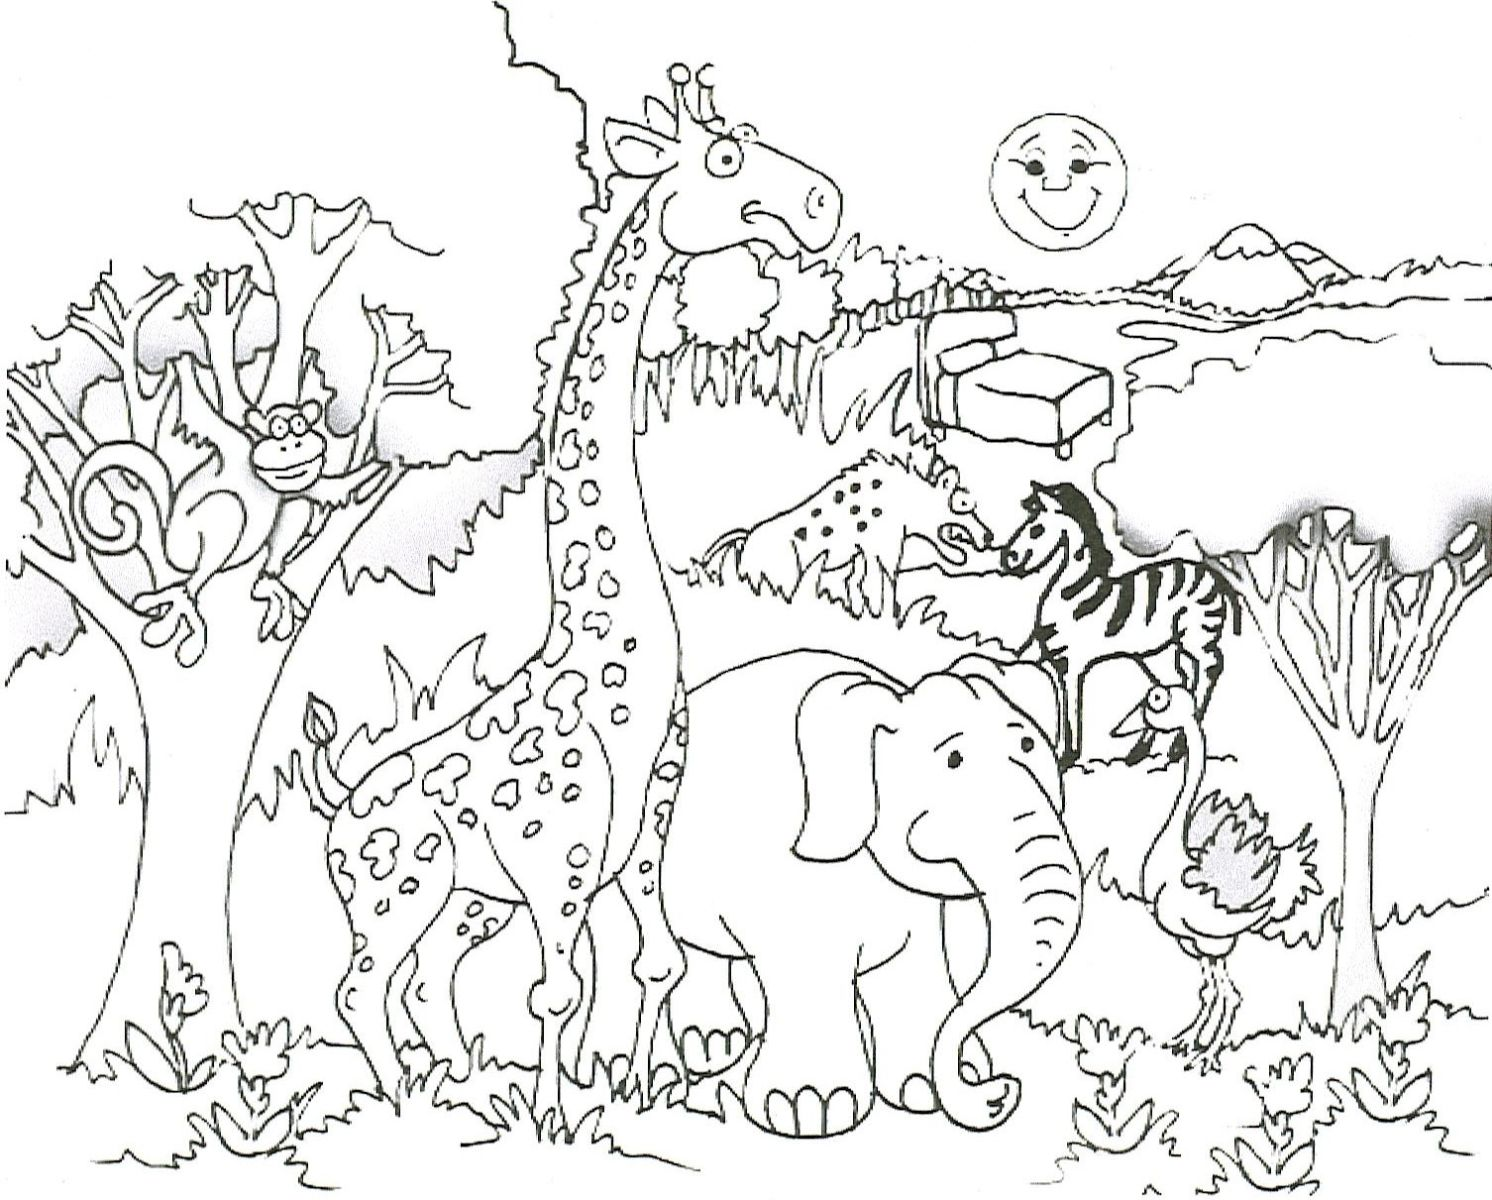 African Animal Coloring Page 01 Zoo Coloring Pages Zoo Animal Coloring Pages Giraffe Coloring Pages